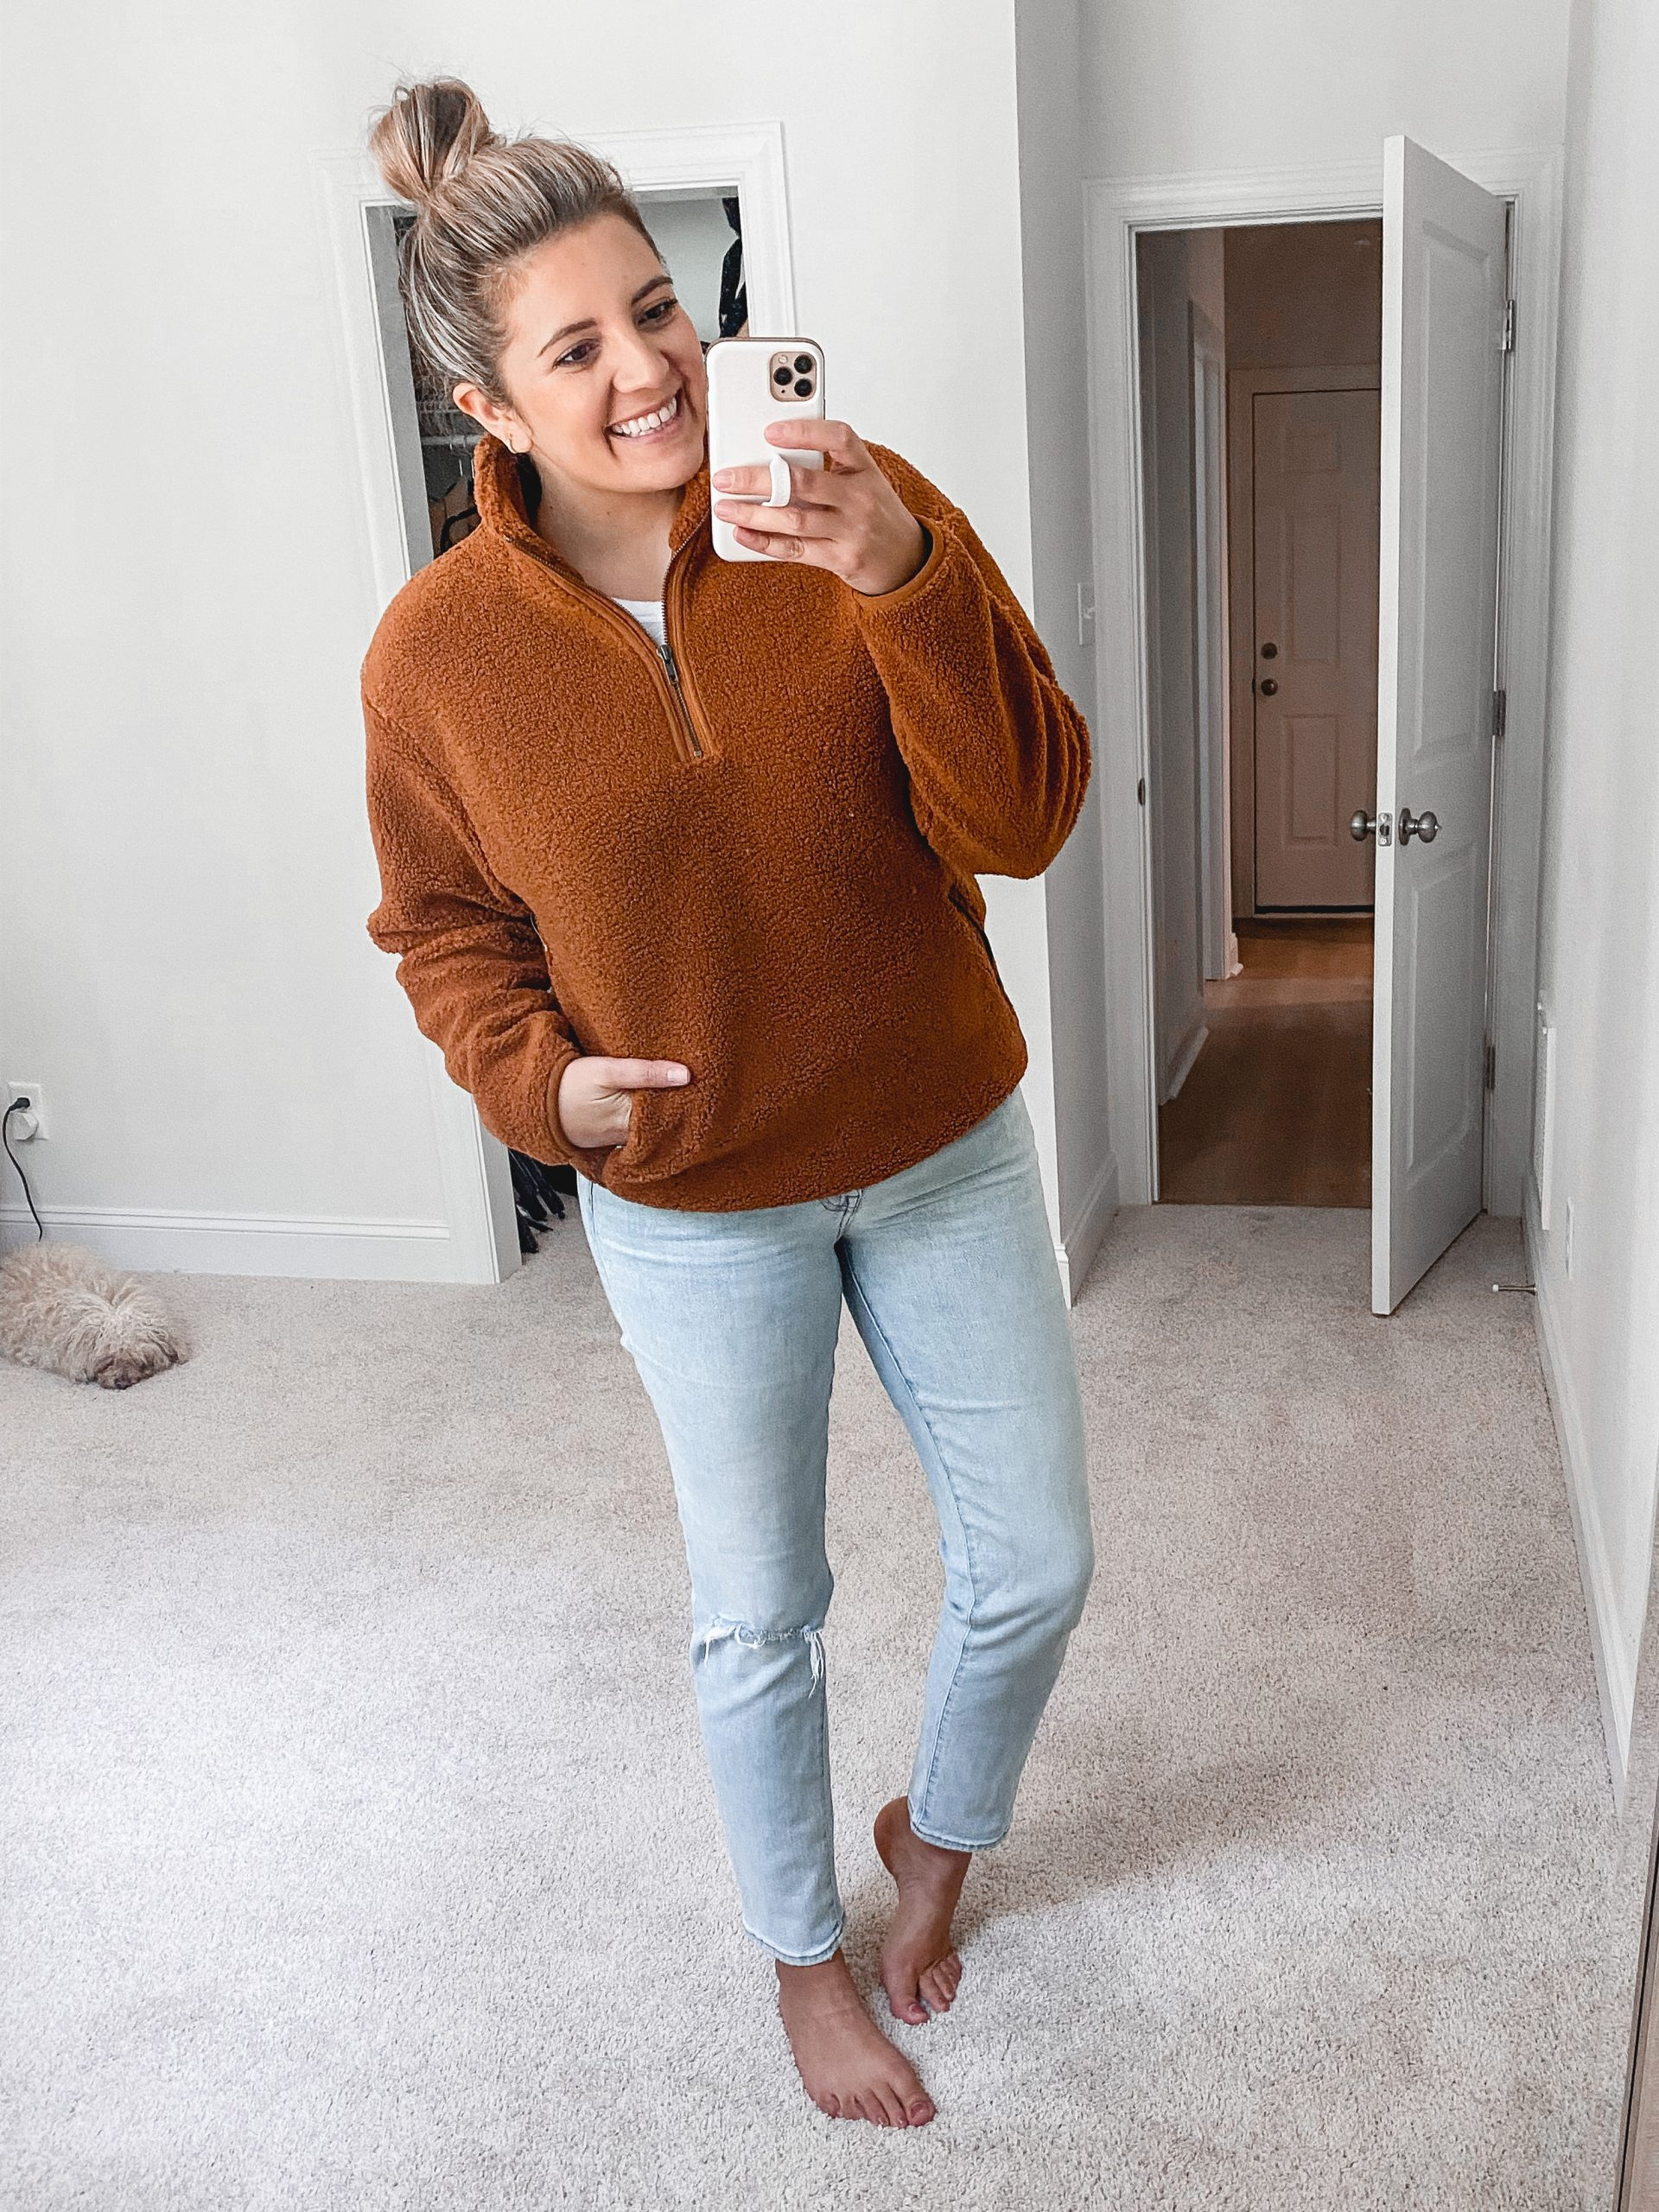 Virginia blogger, Lauren Dix, shares over ten Amazon fashion finds for fall 2020!